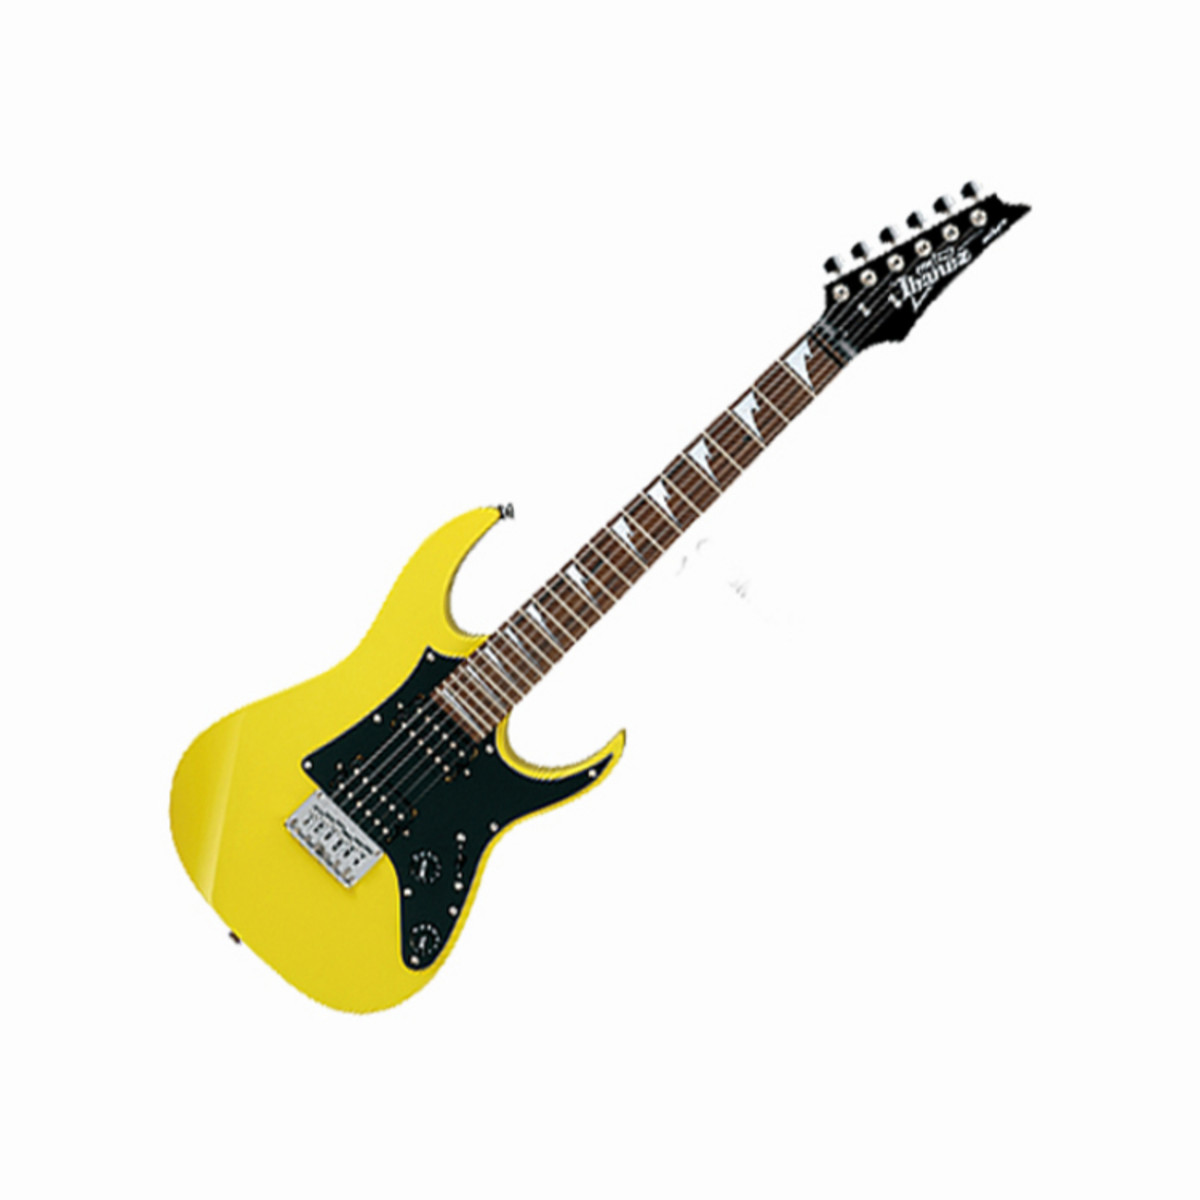 DISC Ibanez GRGM21 3/4 Mikro Electric Guitar, Yellow at ...